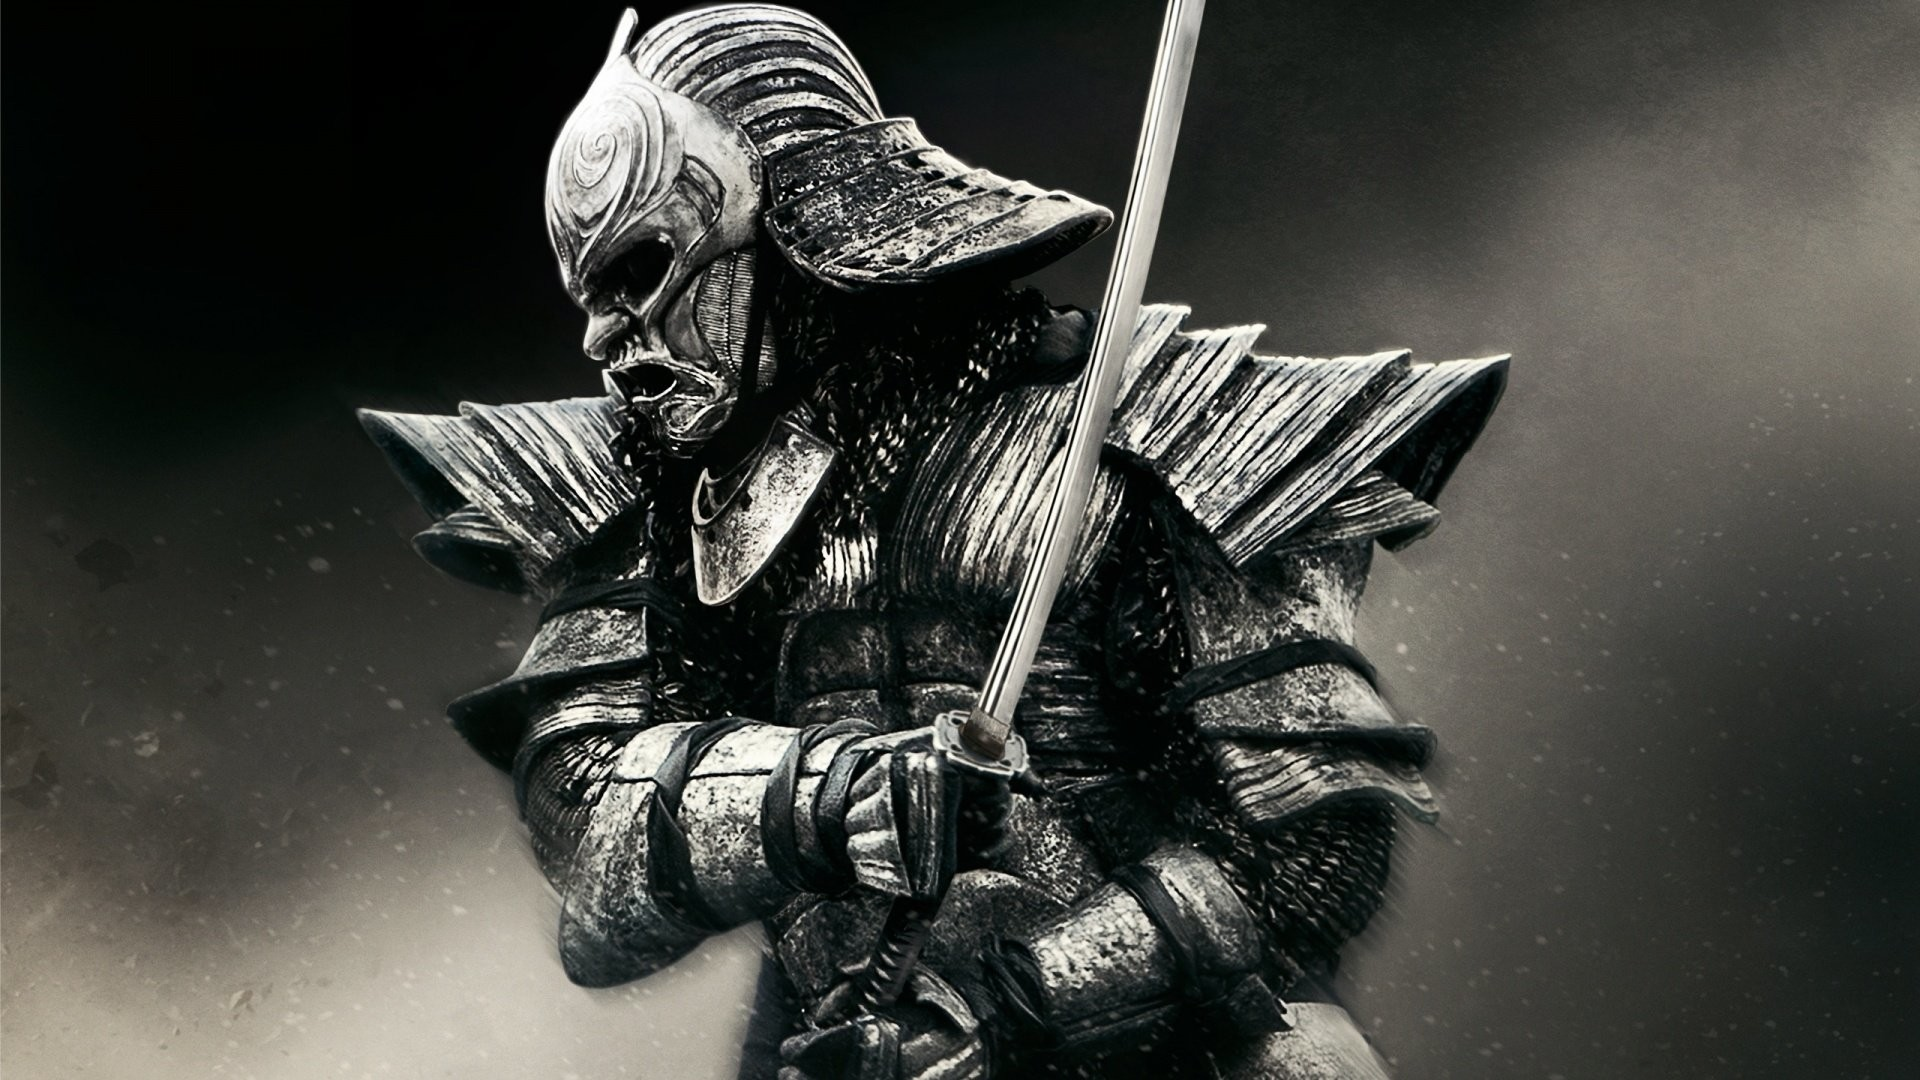 Interesting Samurai HDQ Images Collection: 780031533, px